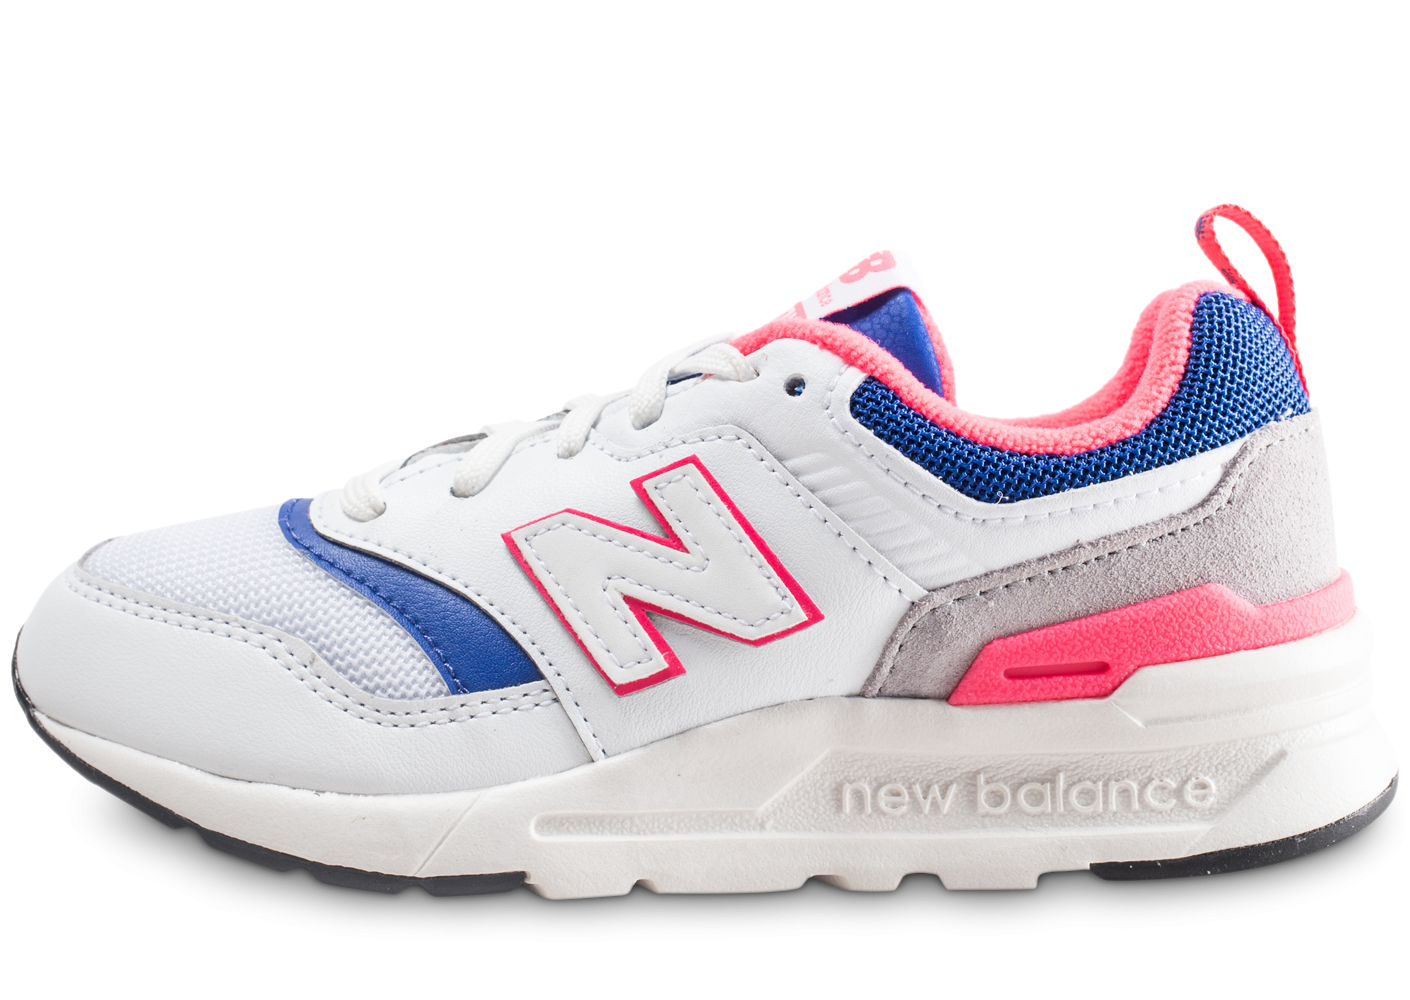 pretty nice 203be 5dbcb 15728-chaussures-new-balance-997-blanc-violet-rose-enfant-vue-exterieure.png